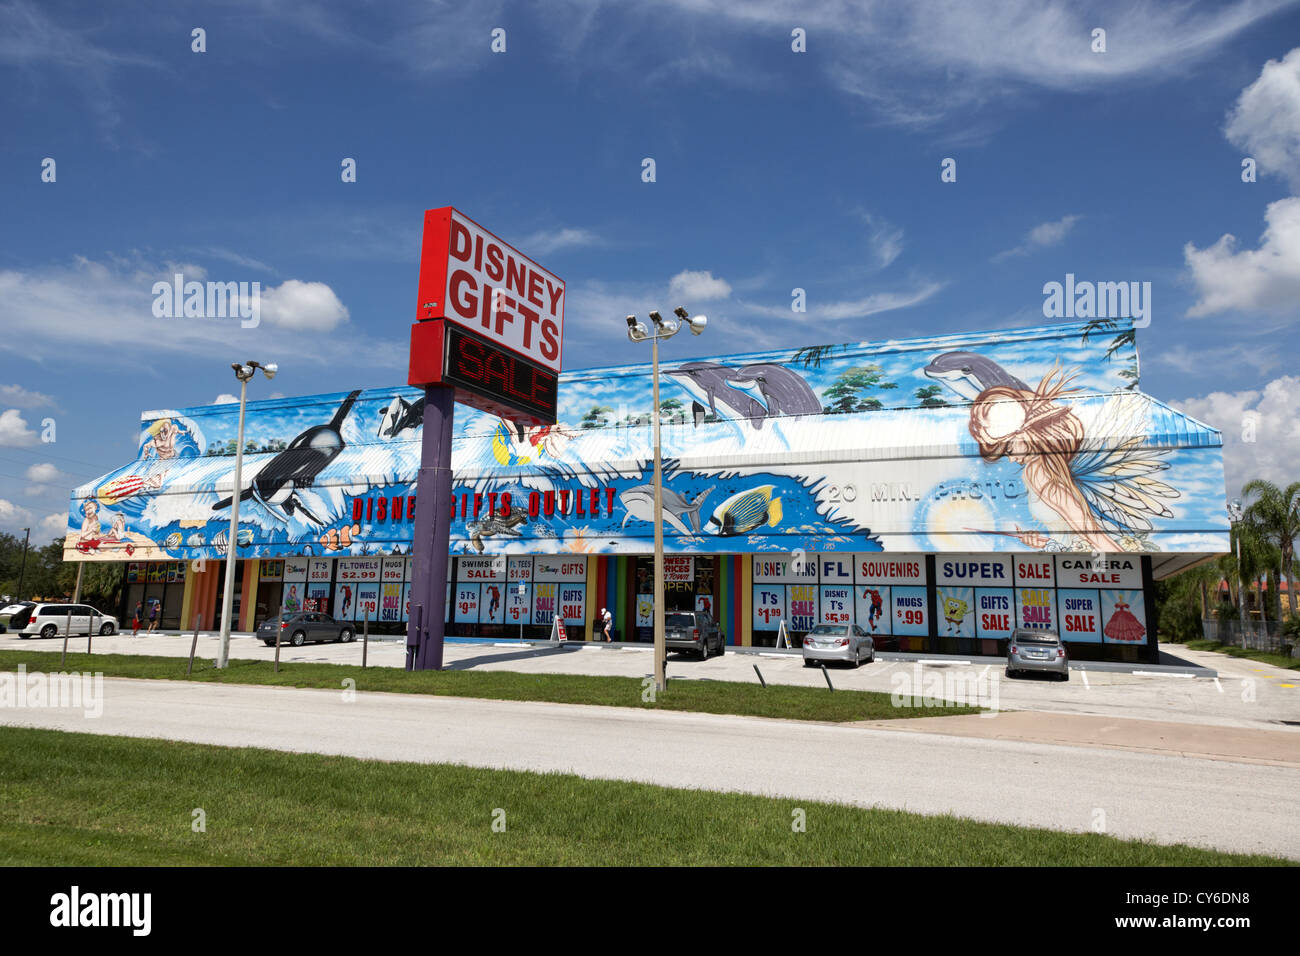 disney gifts store in kissimmee florida usa - Stock Image